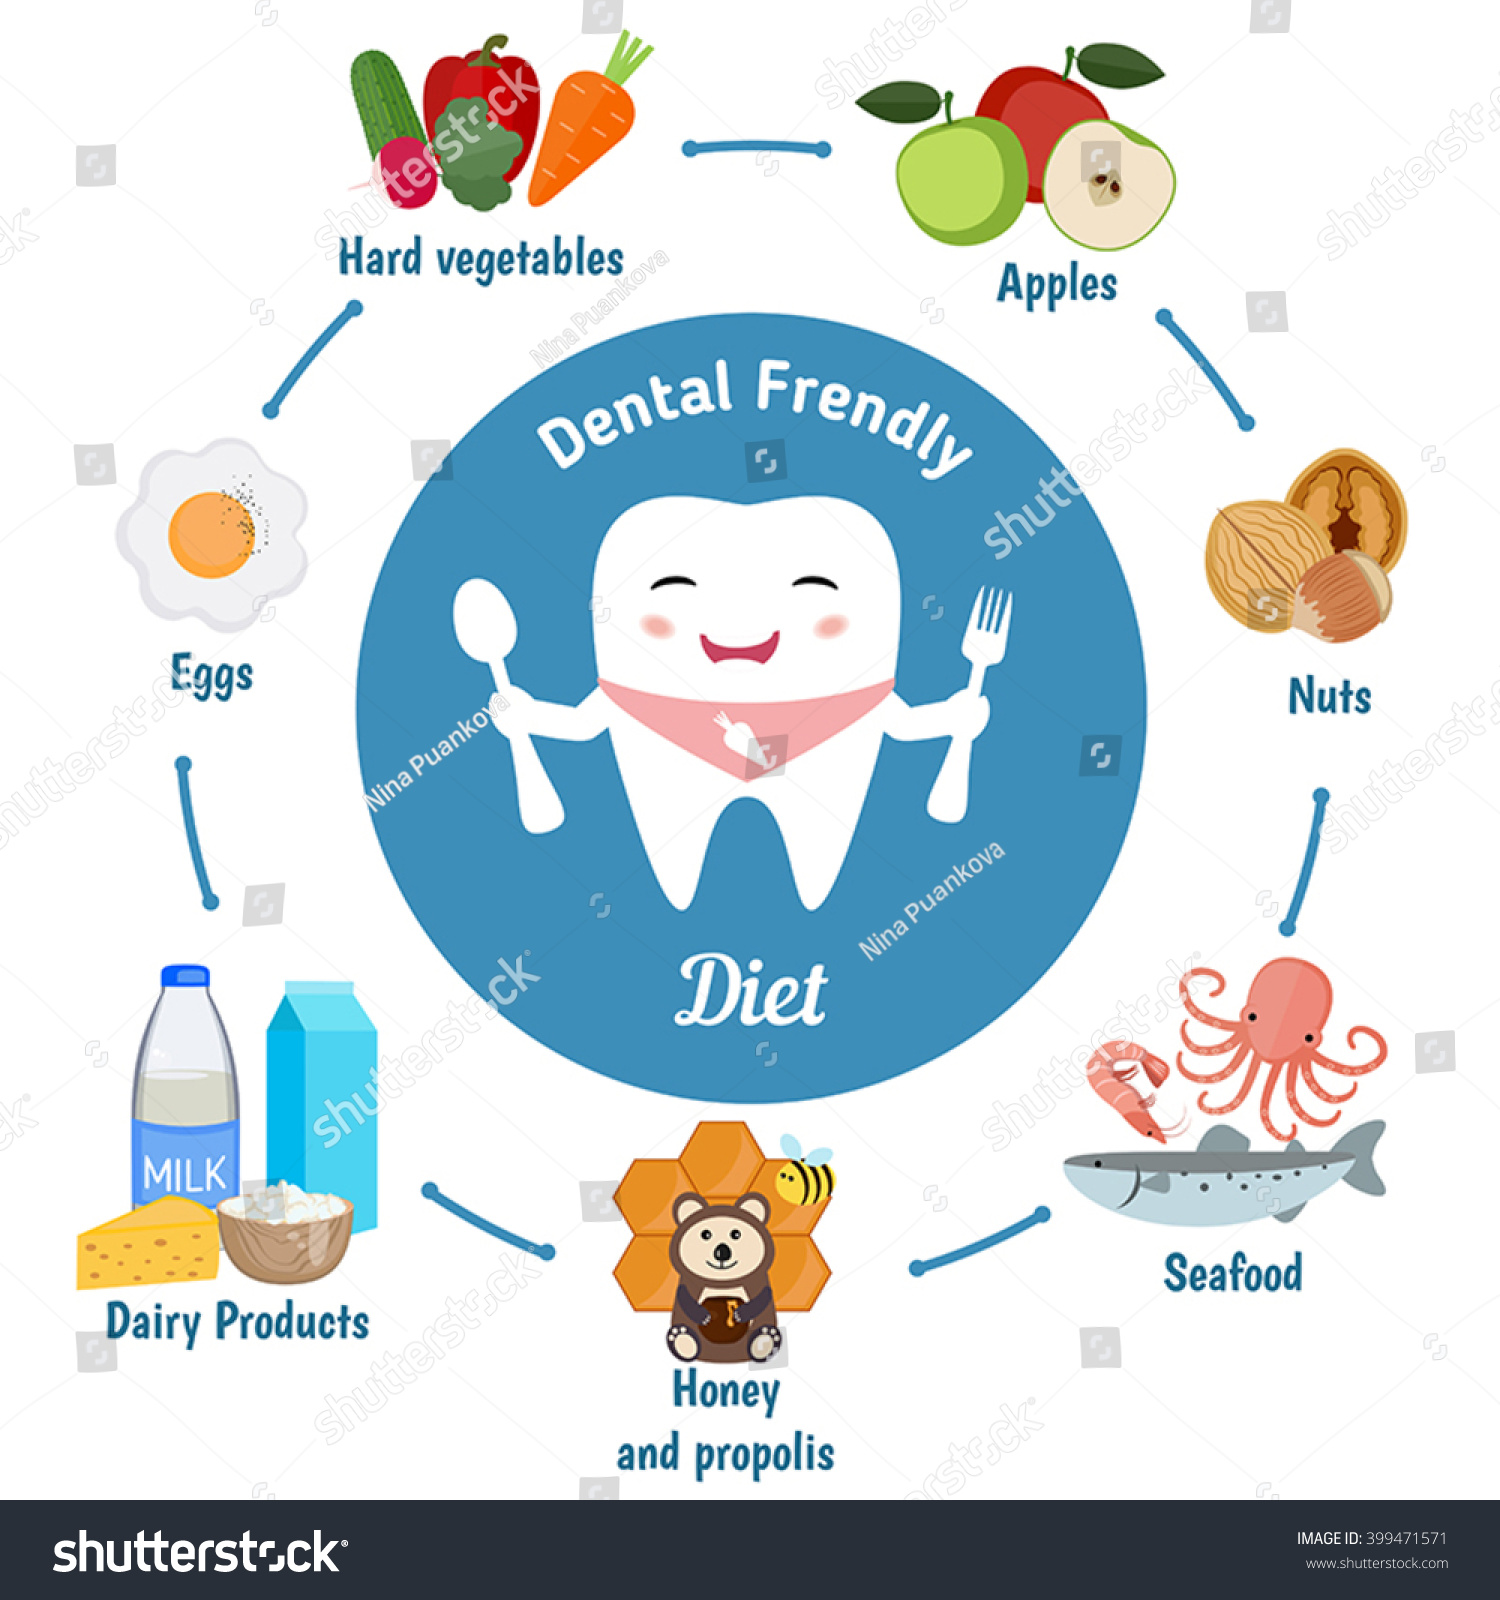 Good Oral Health and Diet